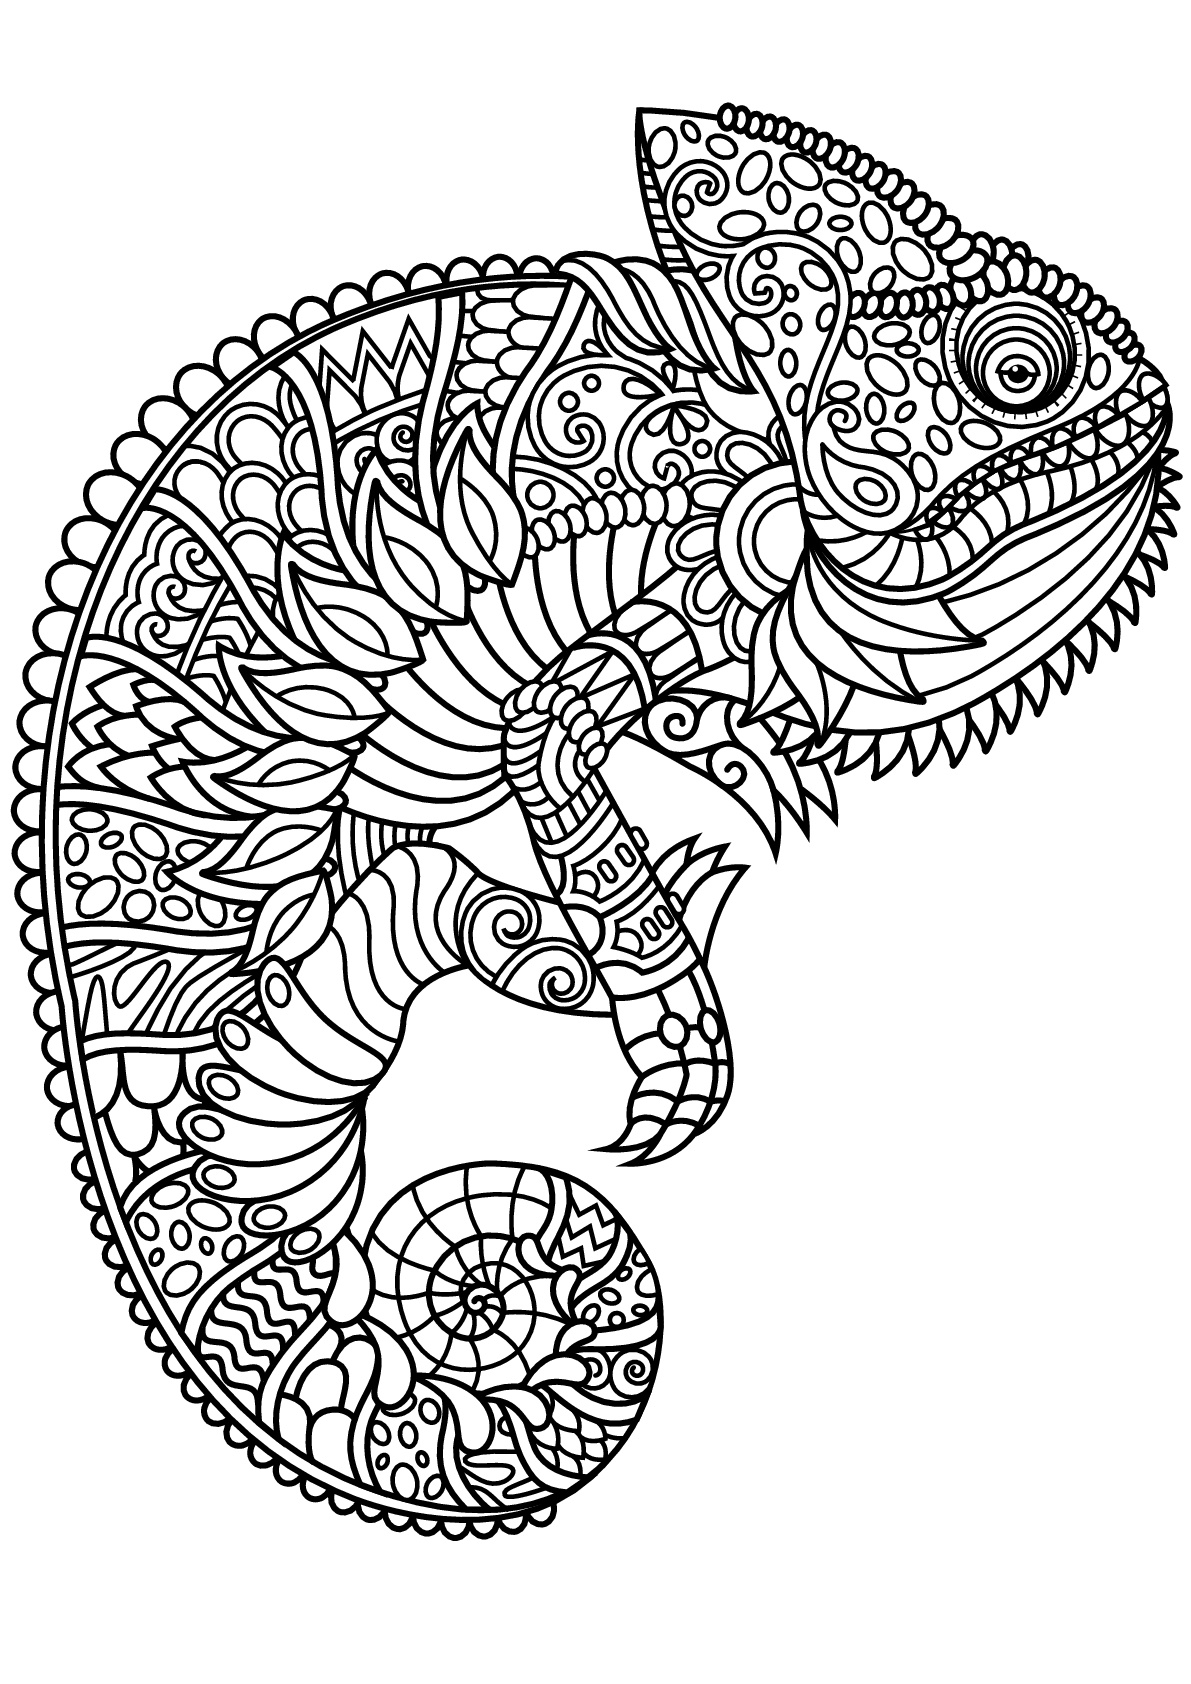 coloriage anti stress cameleon